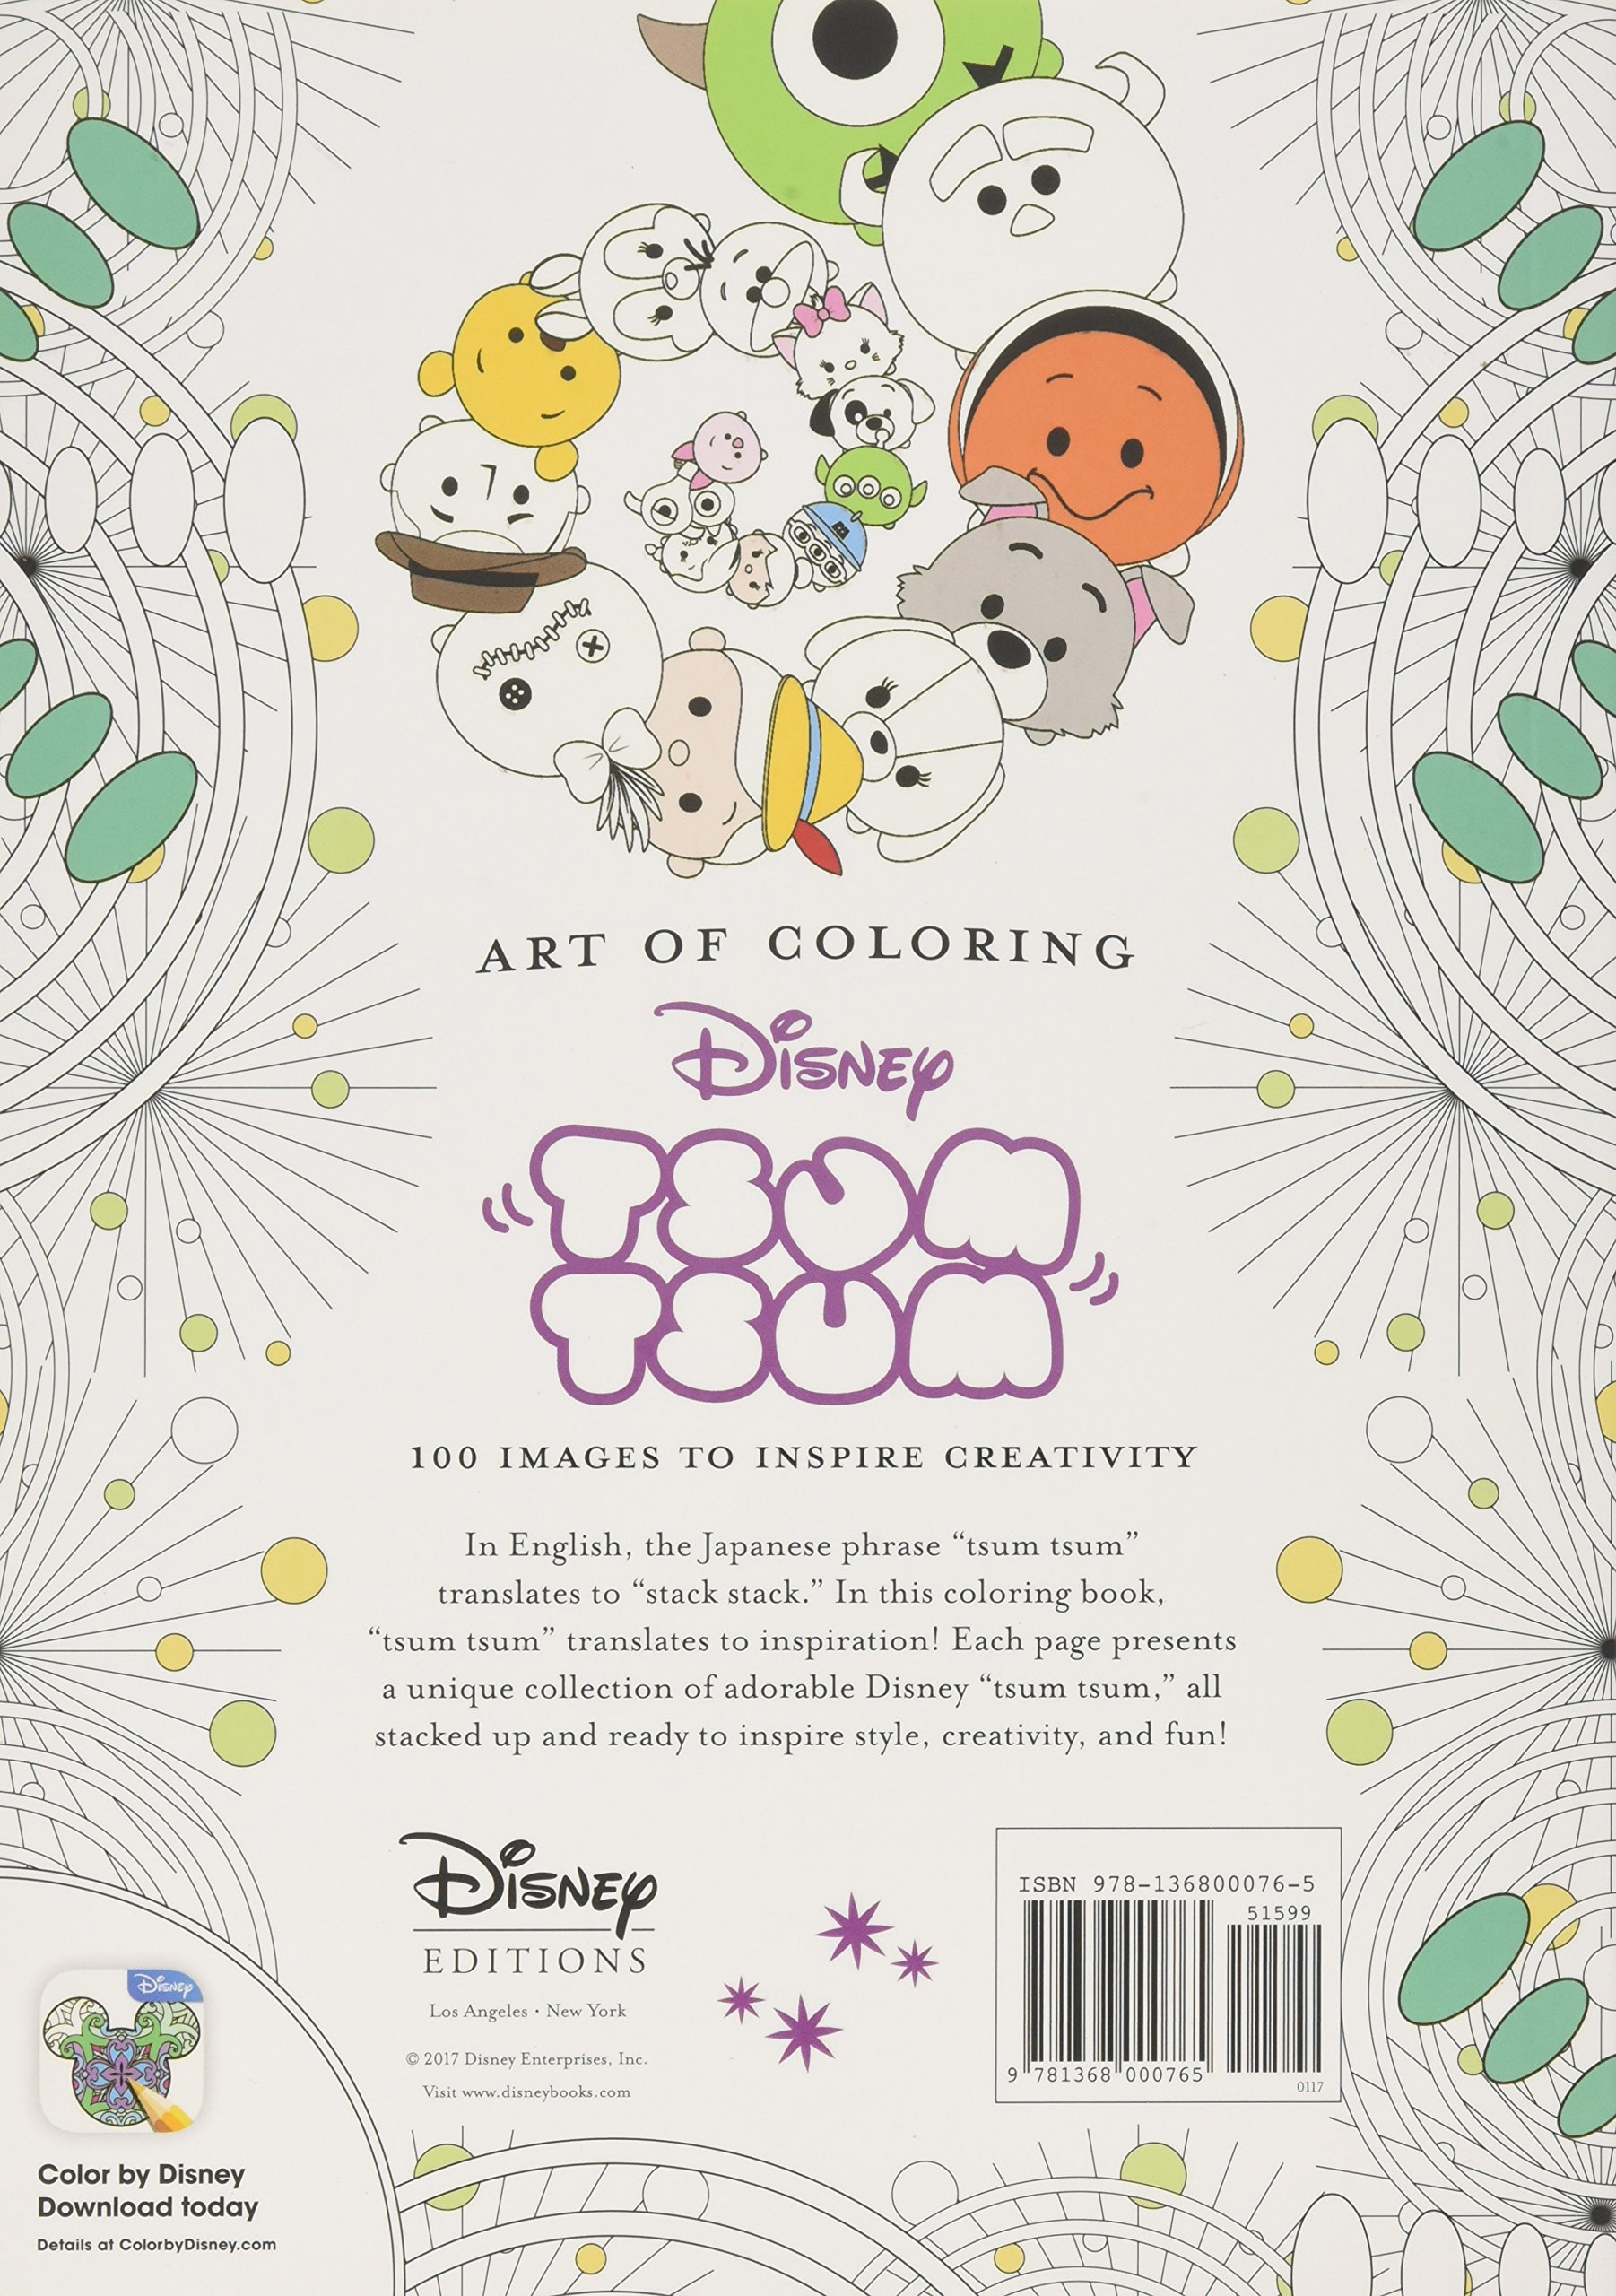 Art Of Coloring Tsum 100 Images To Inspire Creativity Disney Book Group 9781368000765 Amazon Books